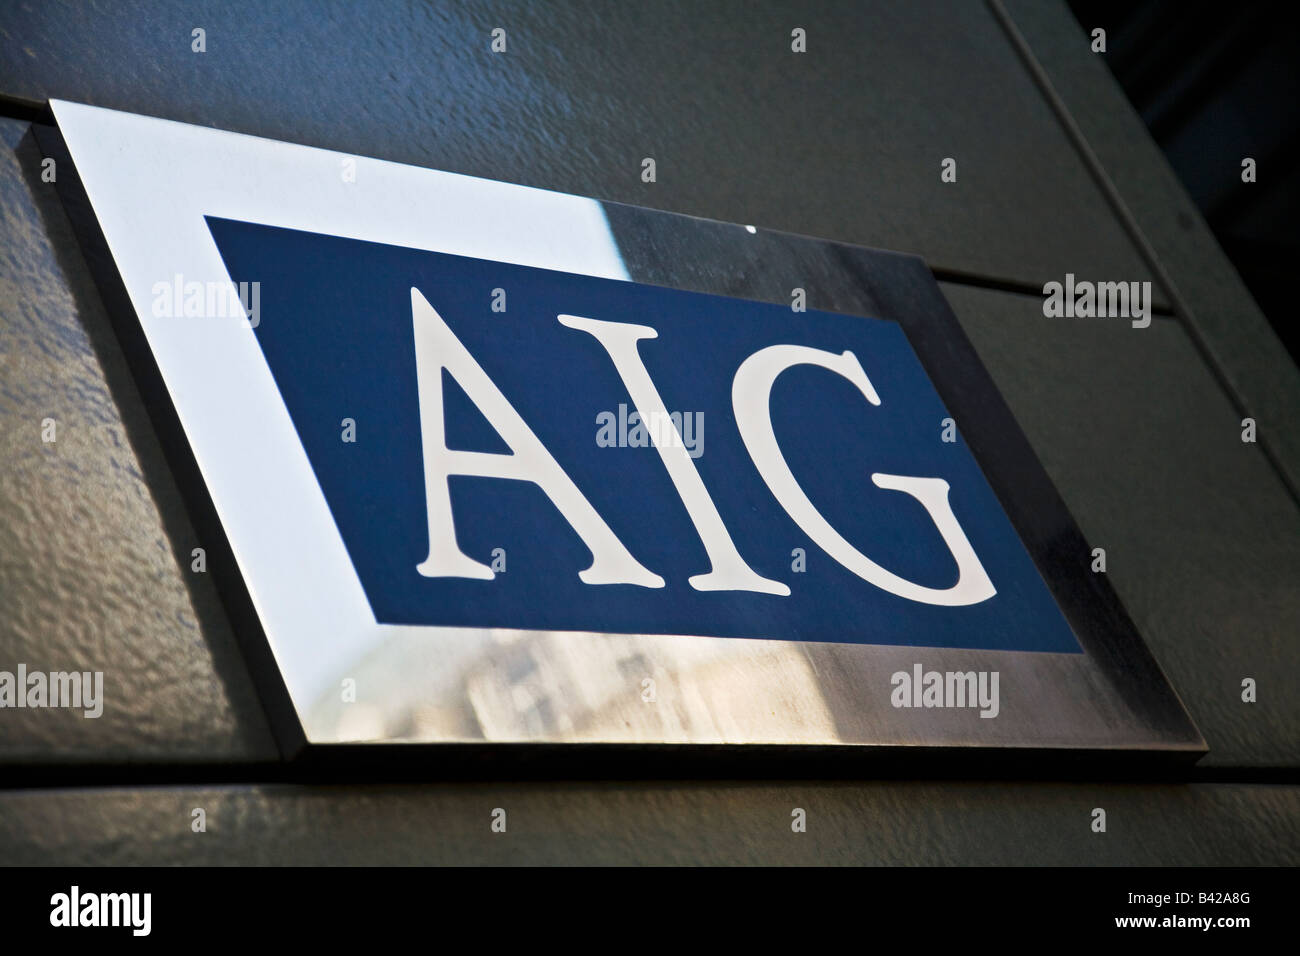 aig american international group American international group, inc is an insurance company, which engages in the provision of property casualty insurance, life insurance, retirement products, mortgage insurance and other.